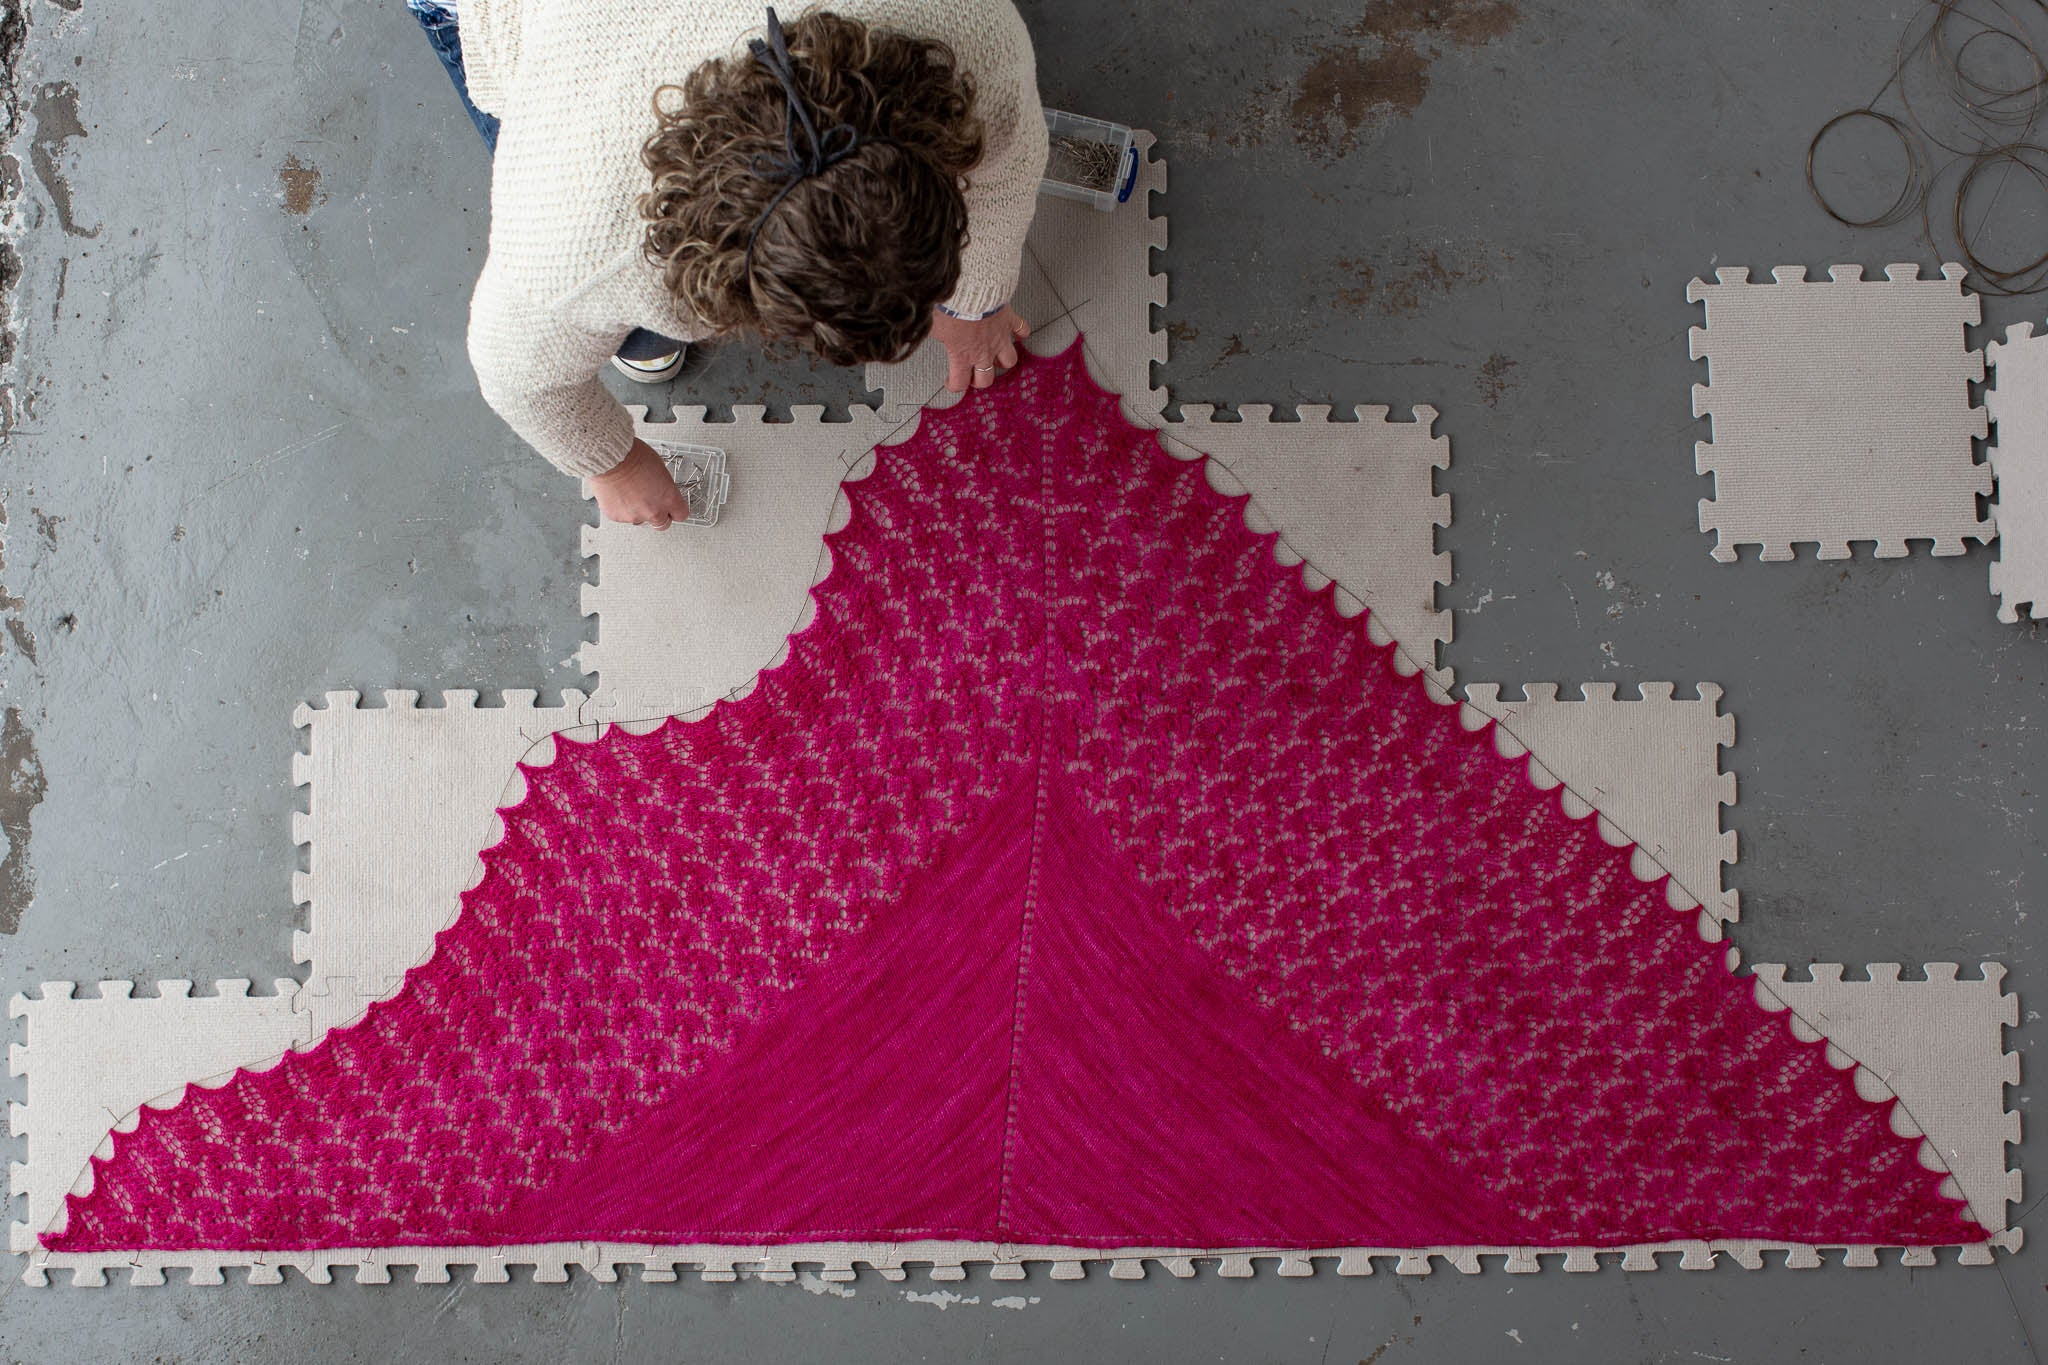 A photo taken from above of an entire triangular pink shawl, partially pinned out on a blocking mat. A white woman with curly brown hair is leaning over the shawl as the remainder is pinned out.